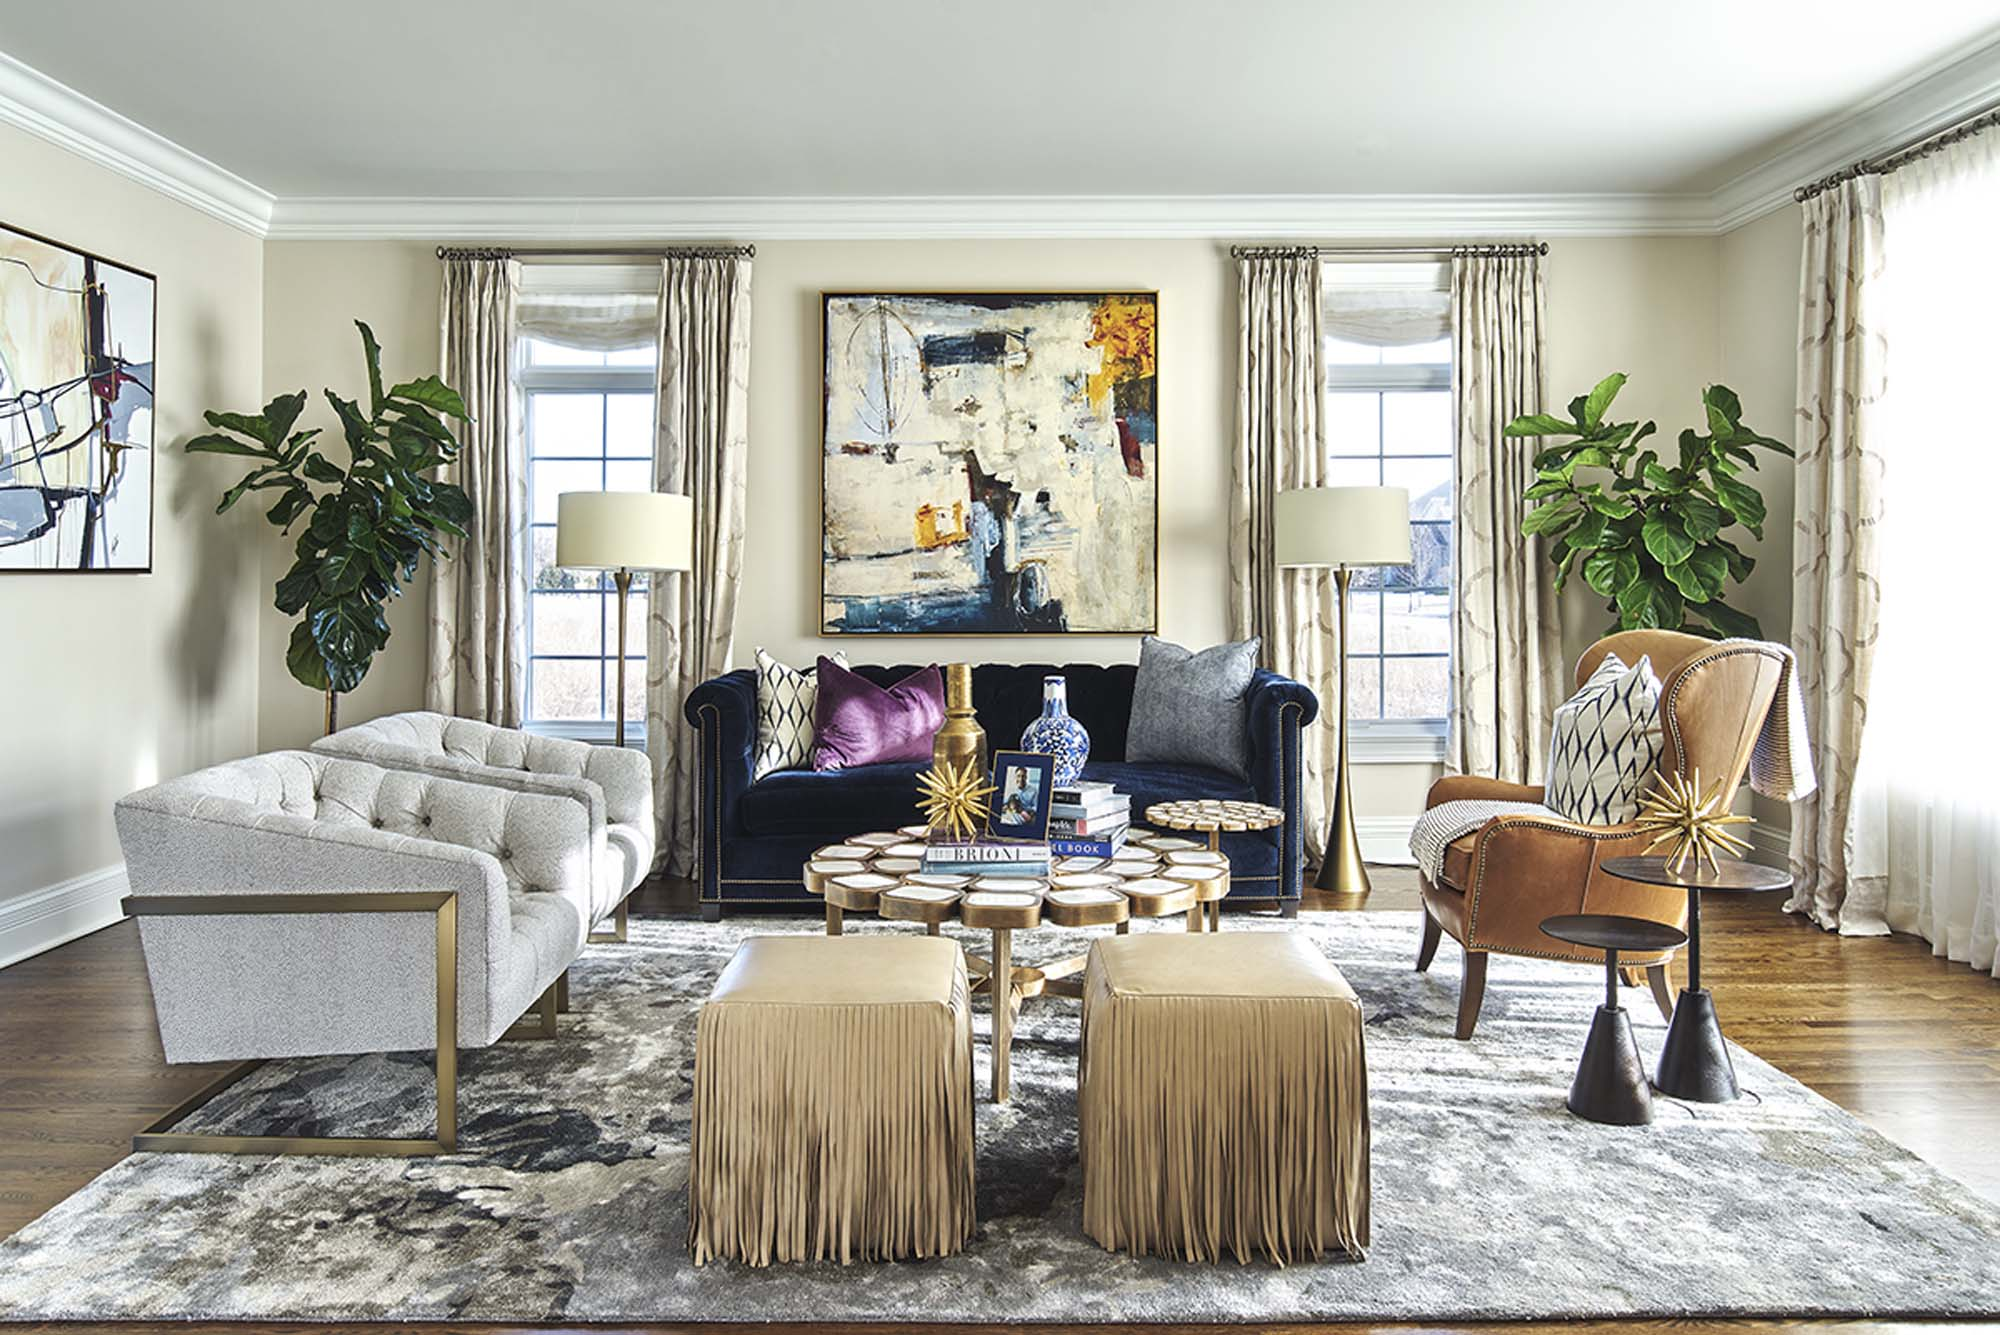 Tiffany Brooks Interiors designed a living room with gold poufs, leather chair and cream accents